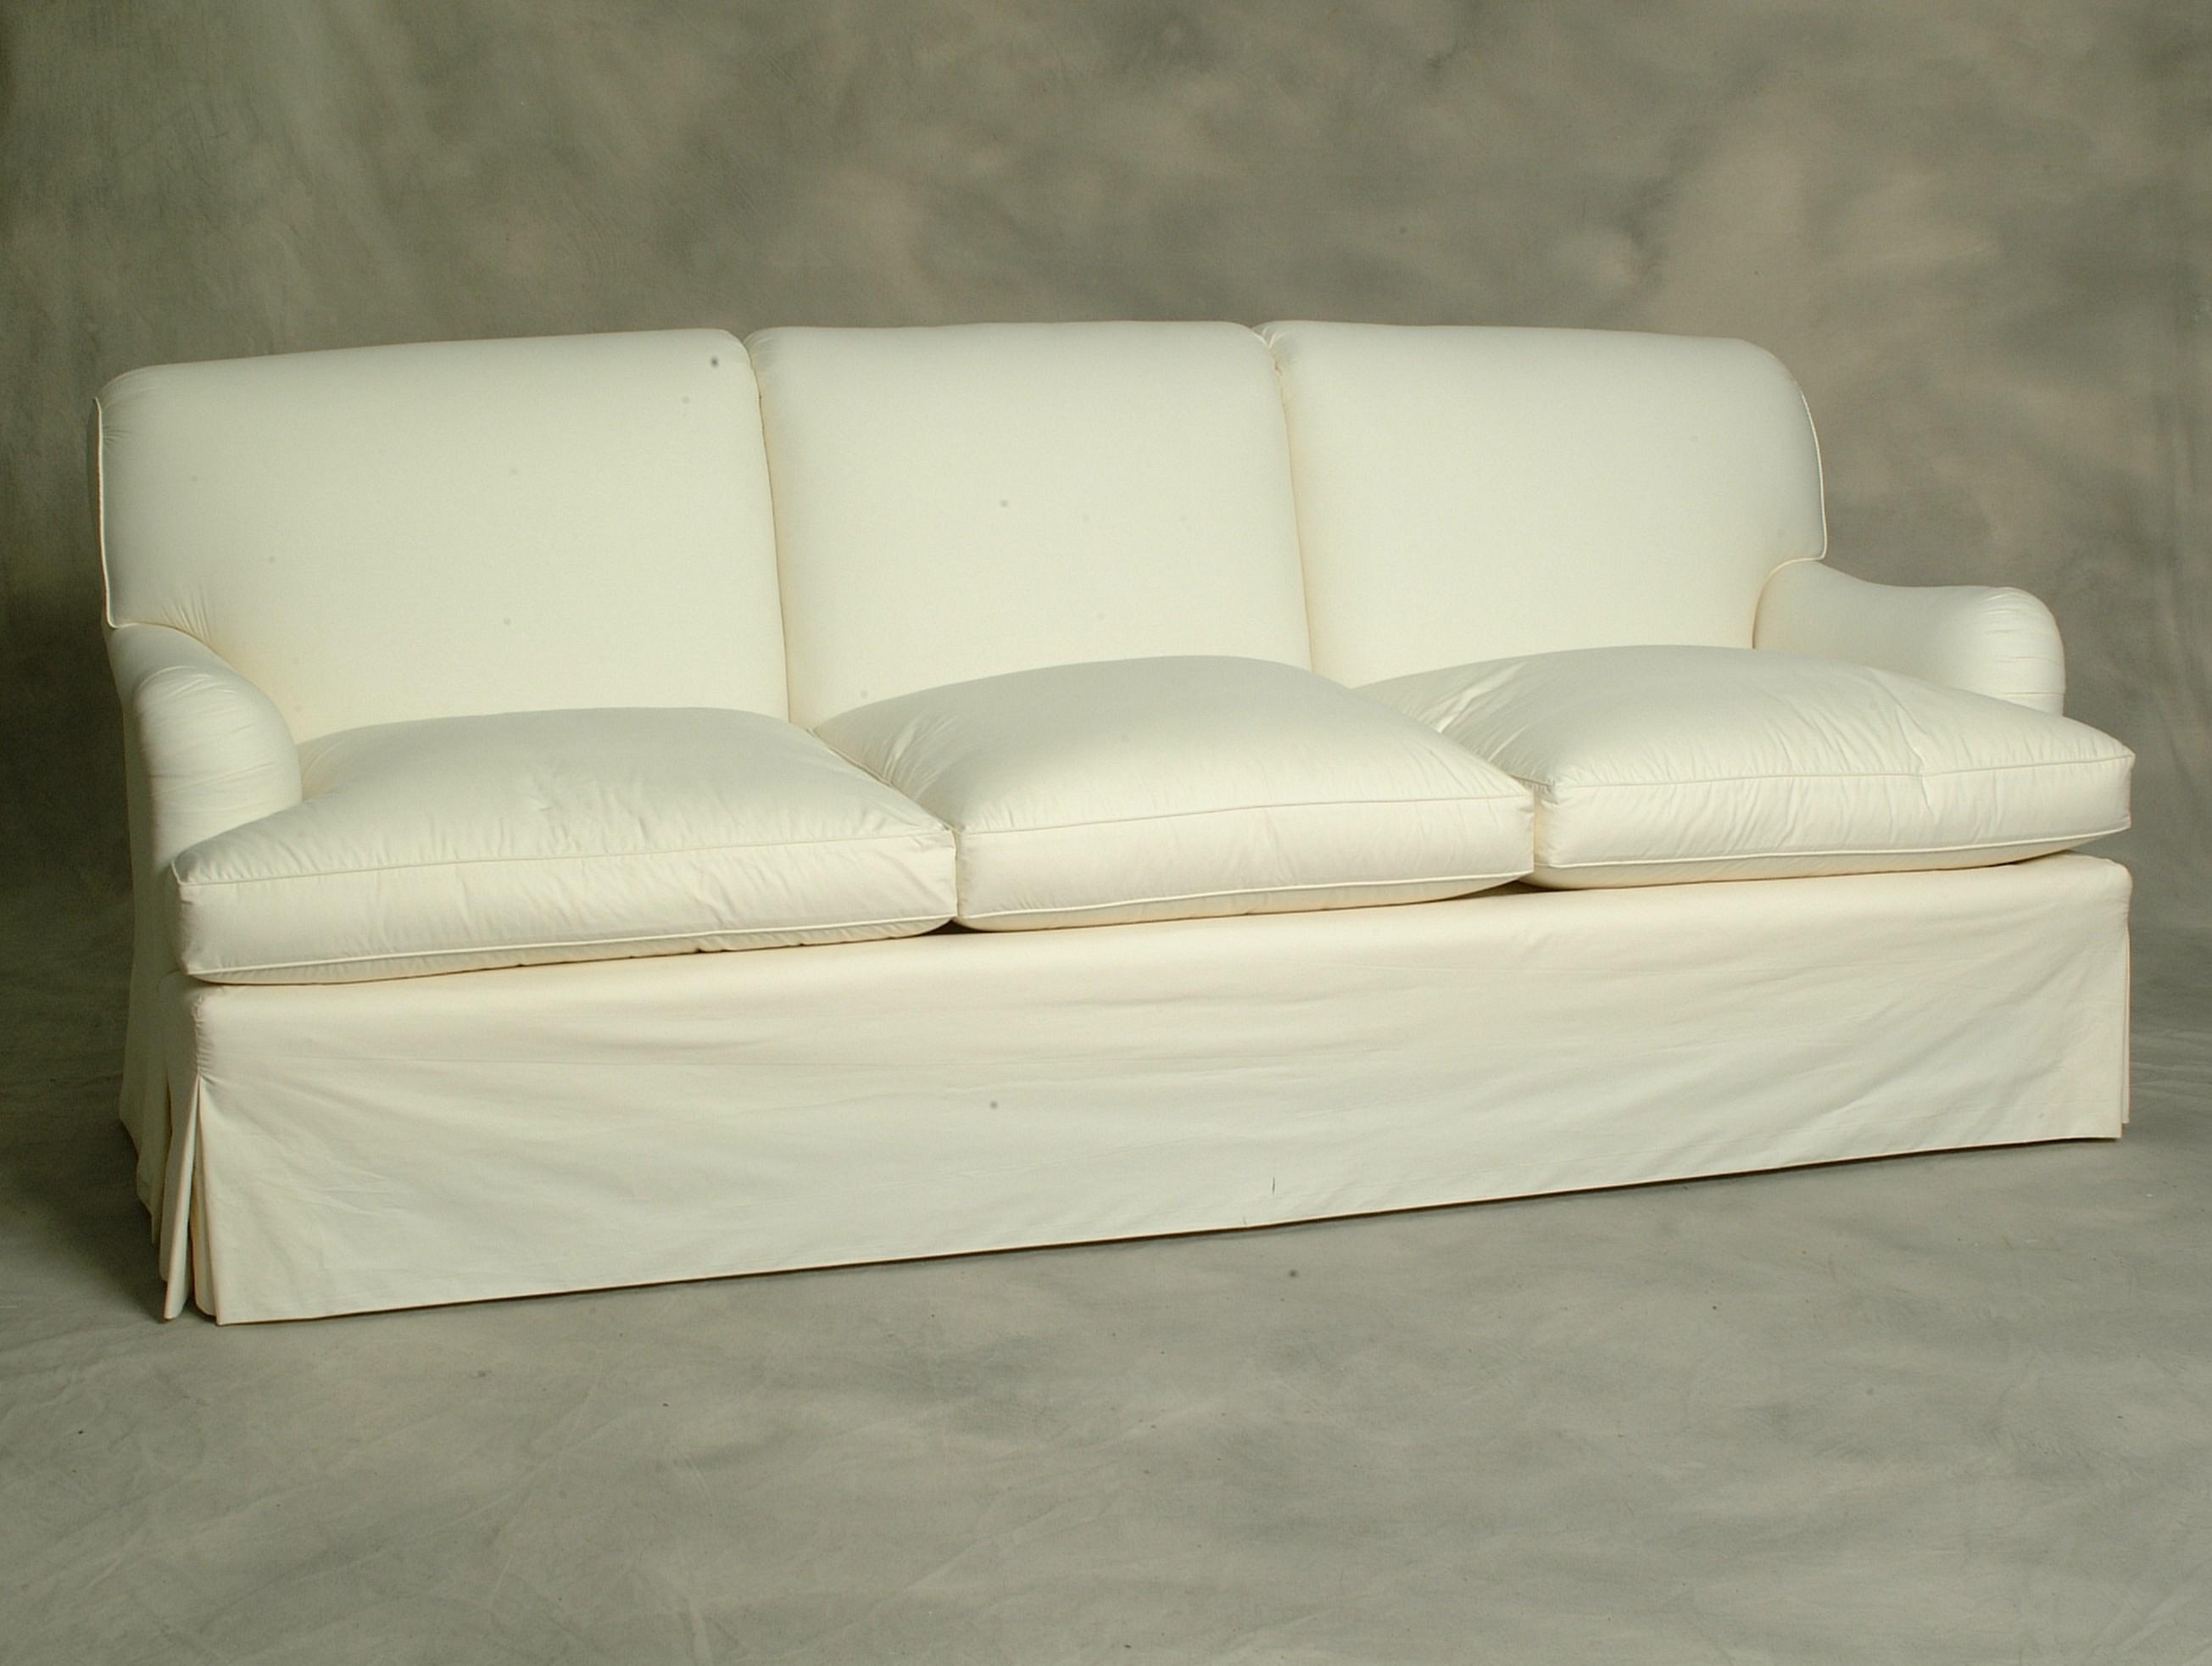 Custom Sofa Cushions Nyc | Cushions Decoration Intended For Custom Sofas Nyc (Image 6 of 20)